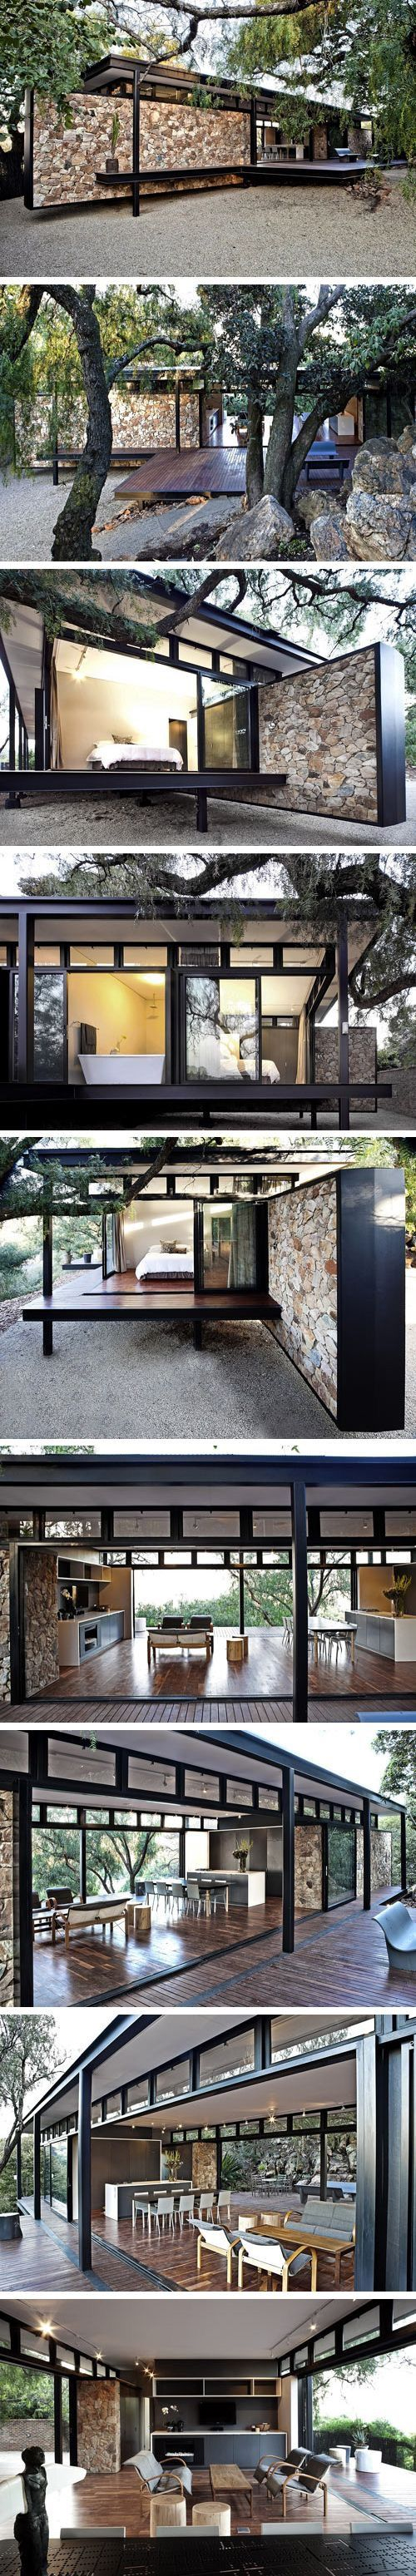 Container home, maybe?